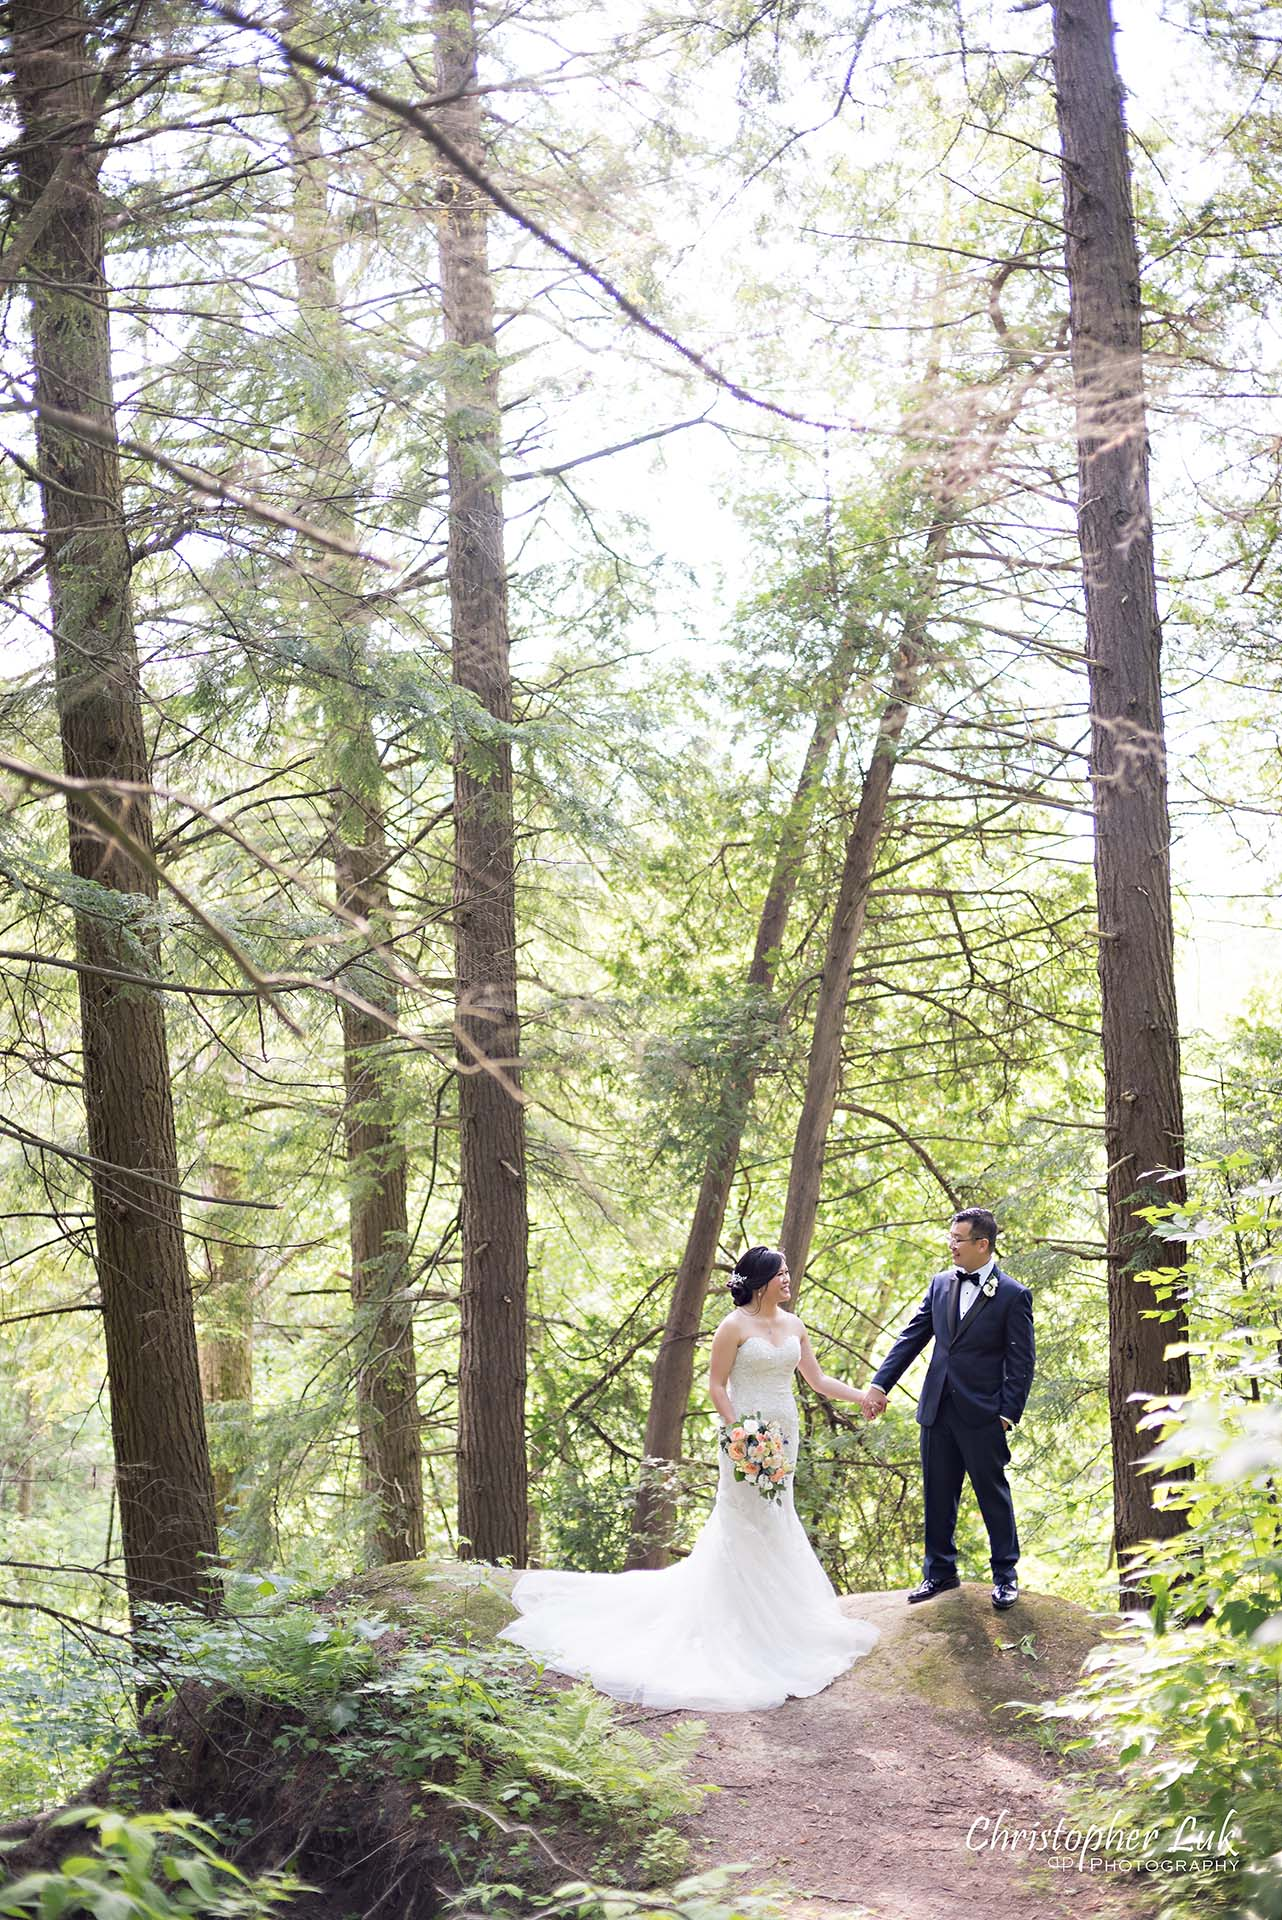 Christopher Luk Toronto Christian Community Church Kleinburg McMichael Art Gallery Presidente Banquet Hall Vaughan Wedding Photographer Bride Groom Natural Candid Photojournalistic Forest Cliff Lookout Overlook Woods Wooded Area Holding Hands Tall Trees Leading Lines Creative Portrait